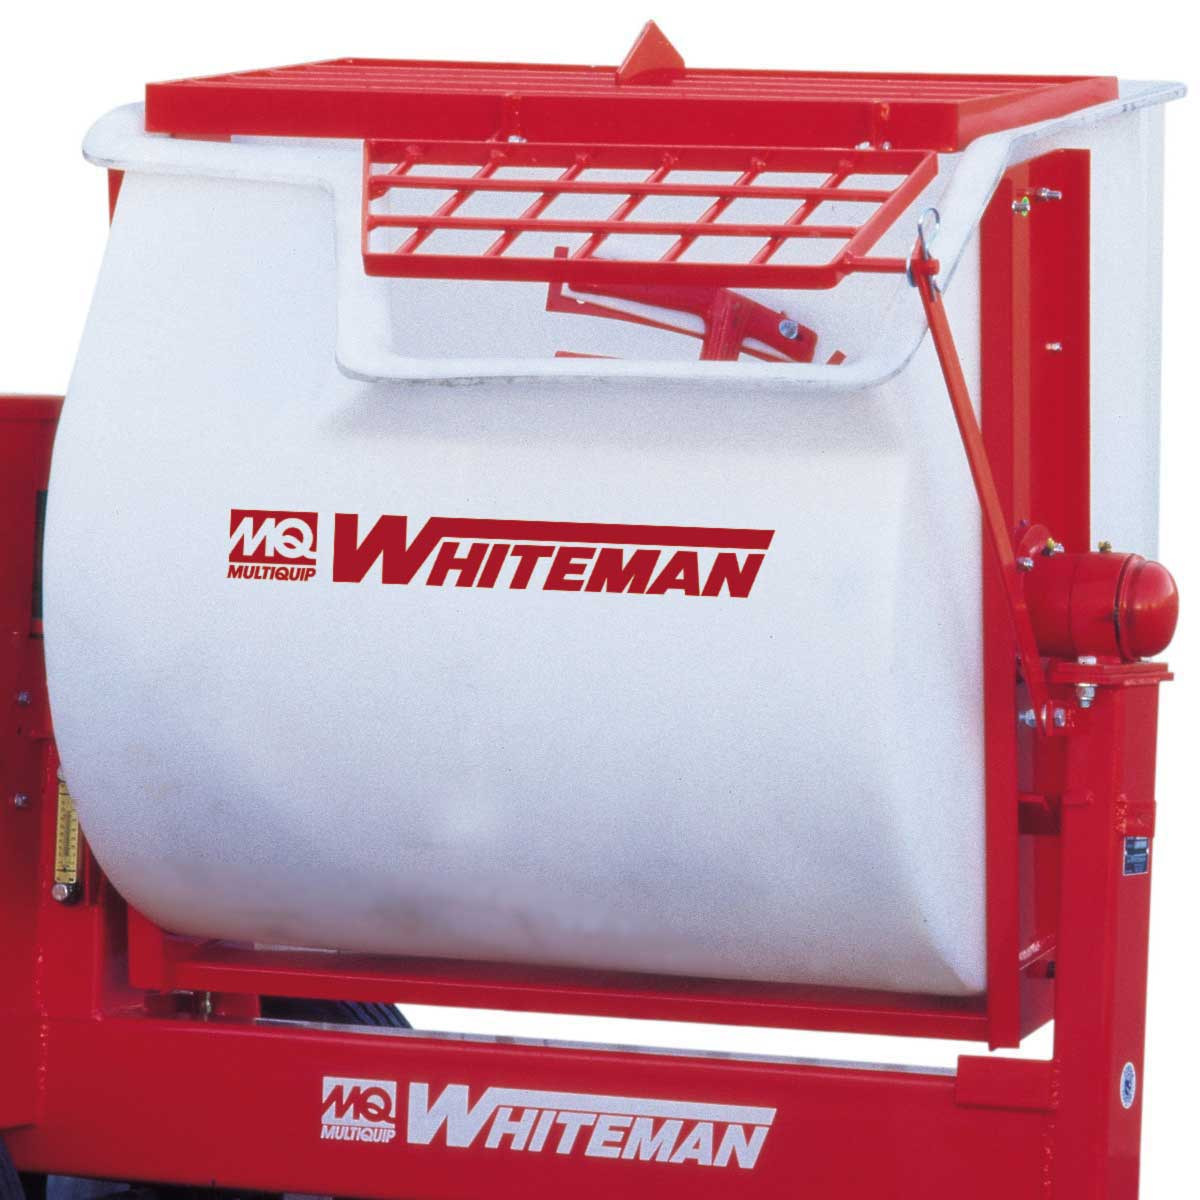 Multiquip Whiteman poly drum mixer